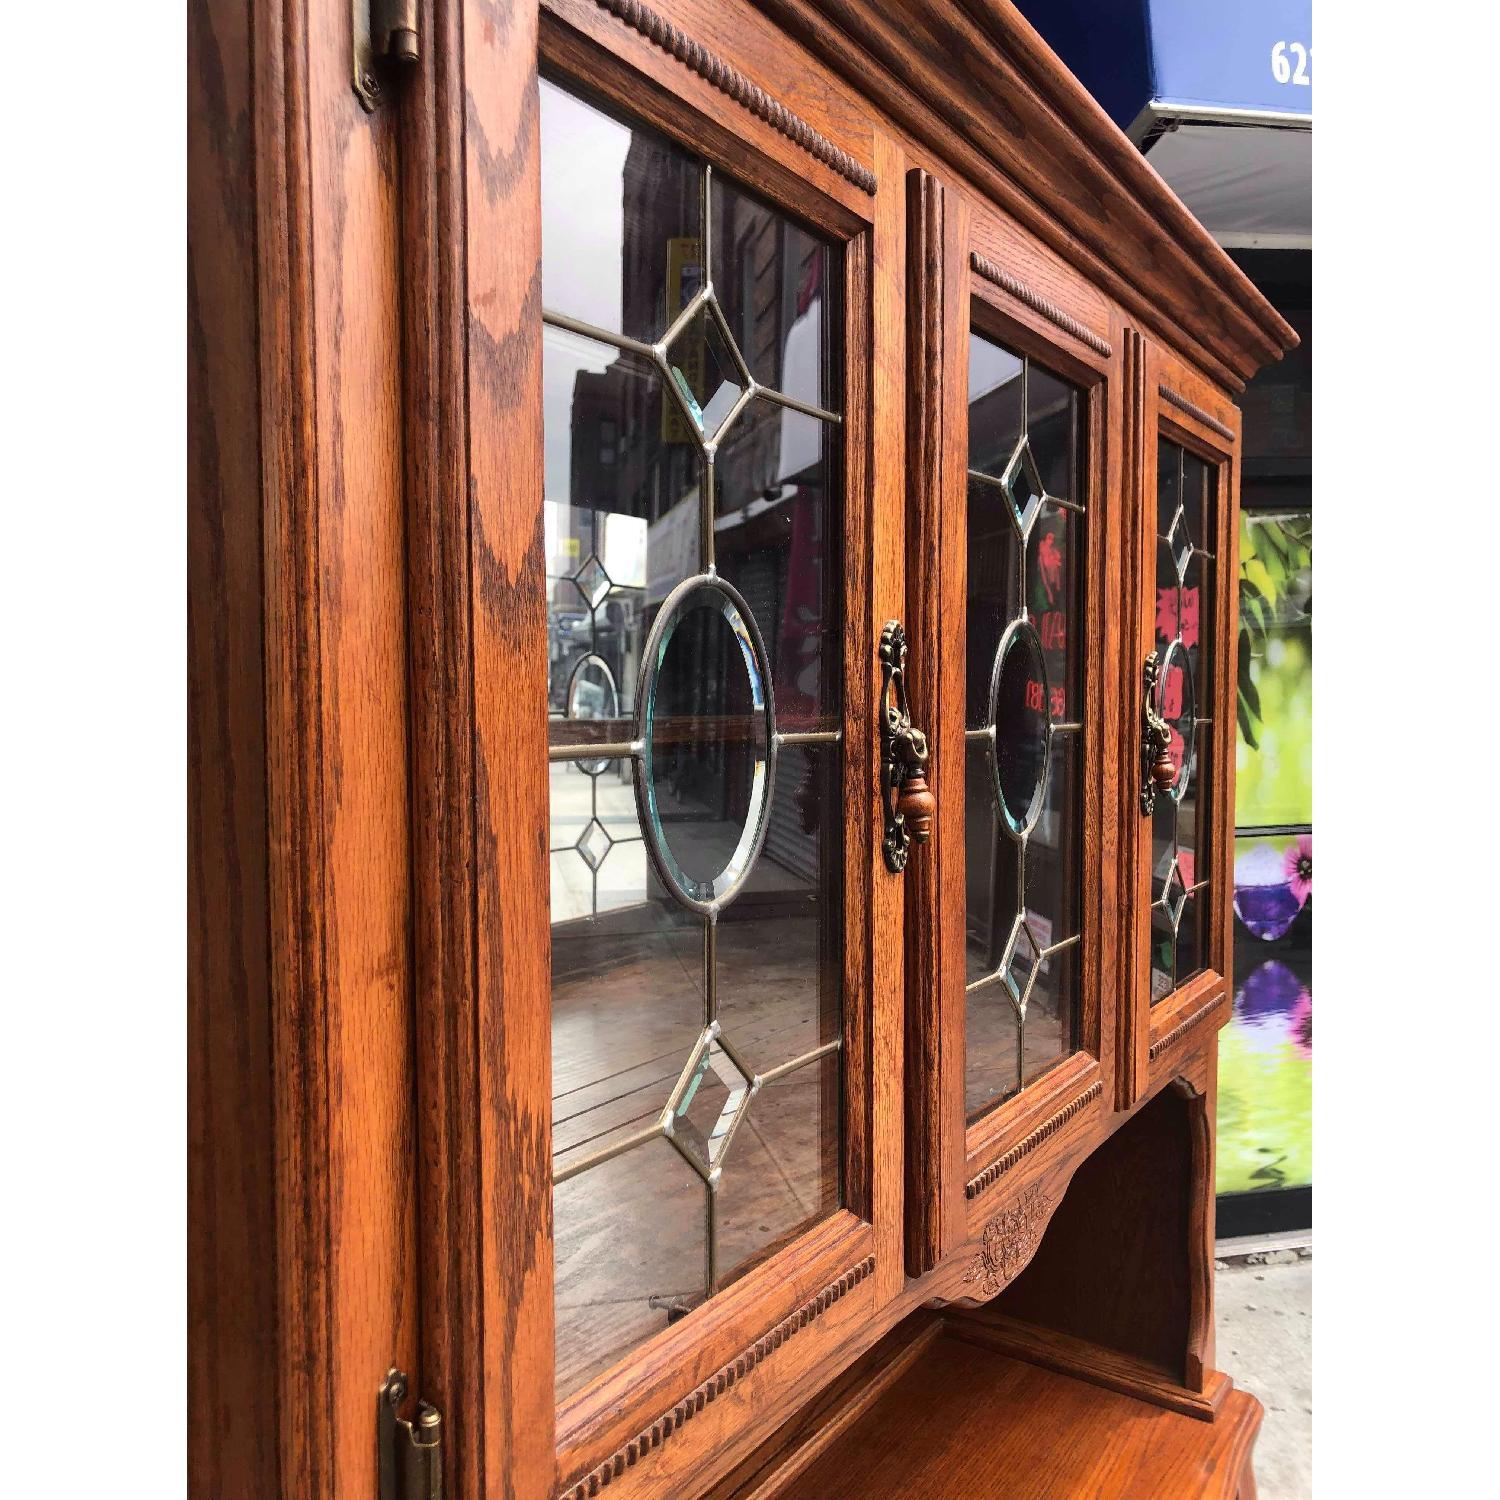 Solid Wood Early American Style Hutch w/ Lights - image-5